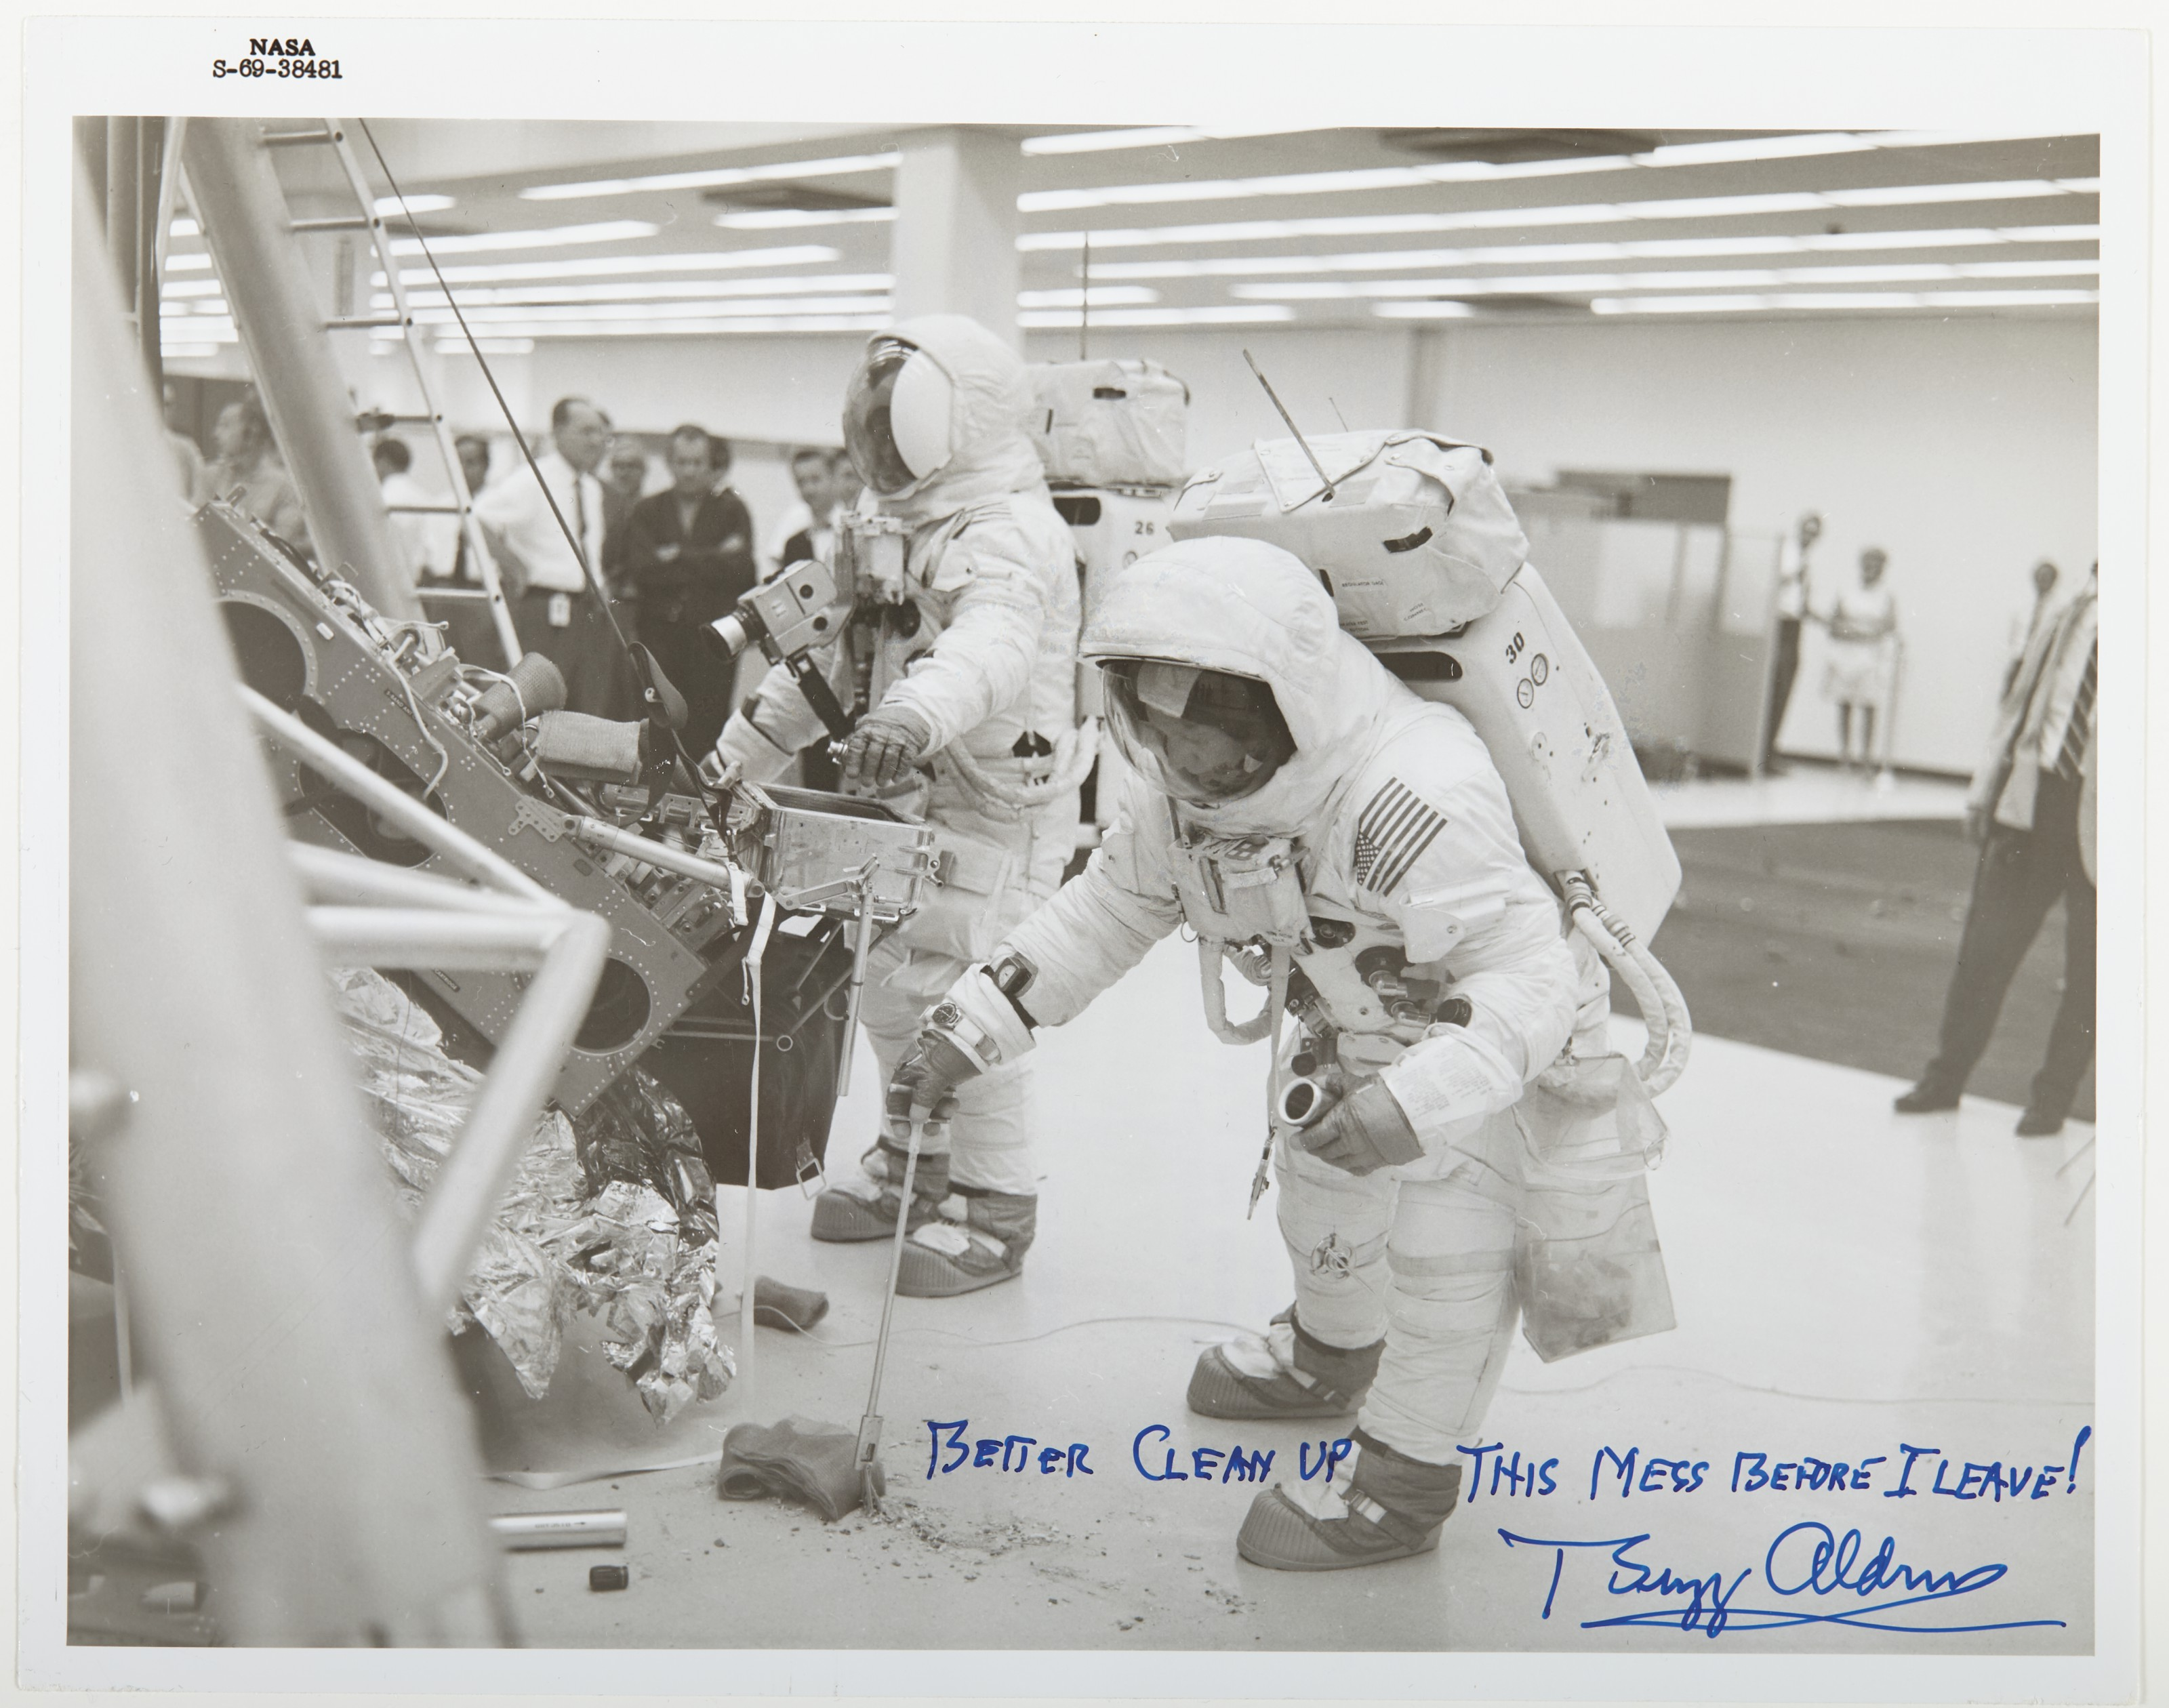 ALDRIN, Buzz (b. 1930). Photograph signed. Kennedy Space Center, 18 June 1969.